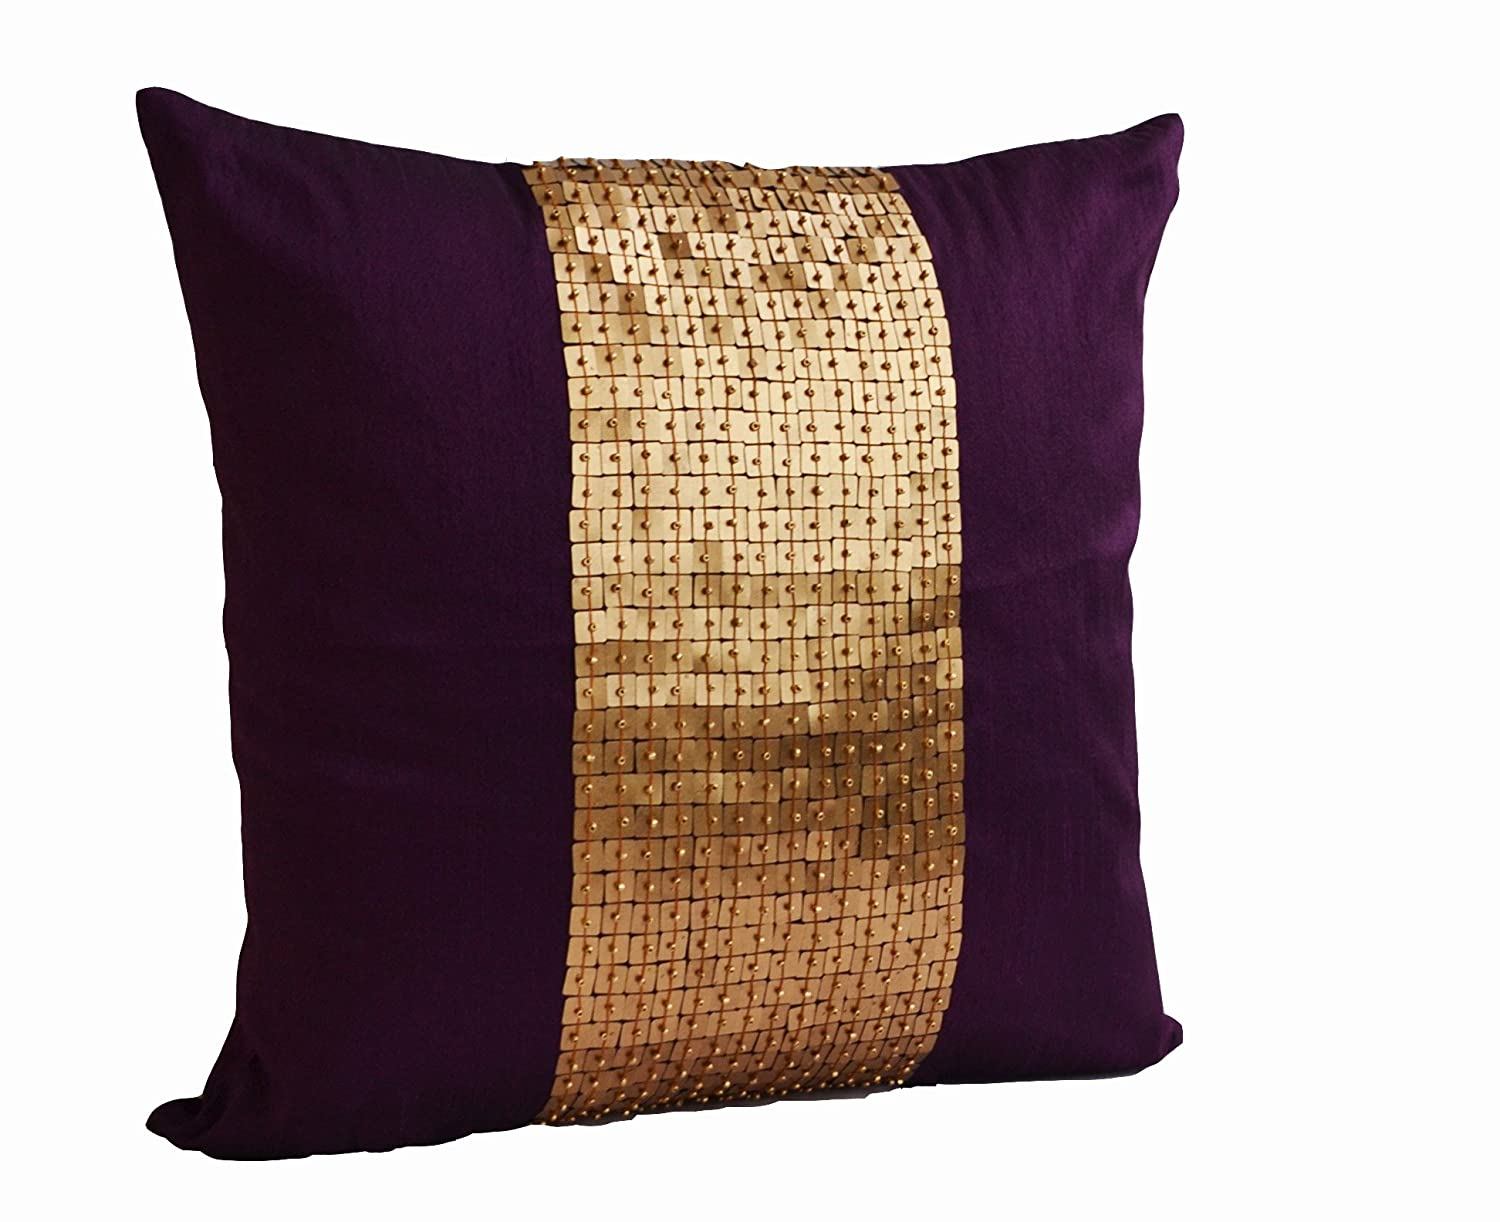 Amazon.com: Amore Beaute Handmade Purple Throw Pillows Covers in ...